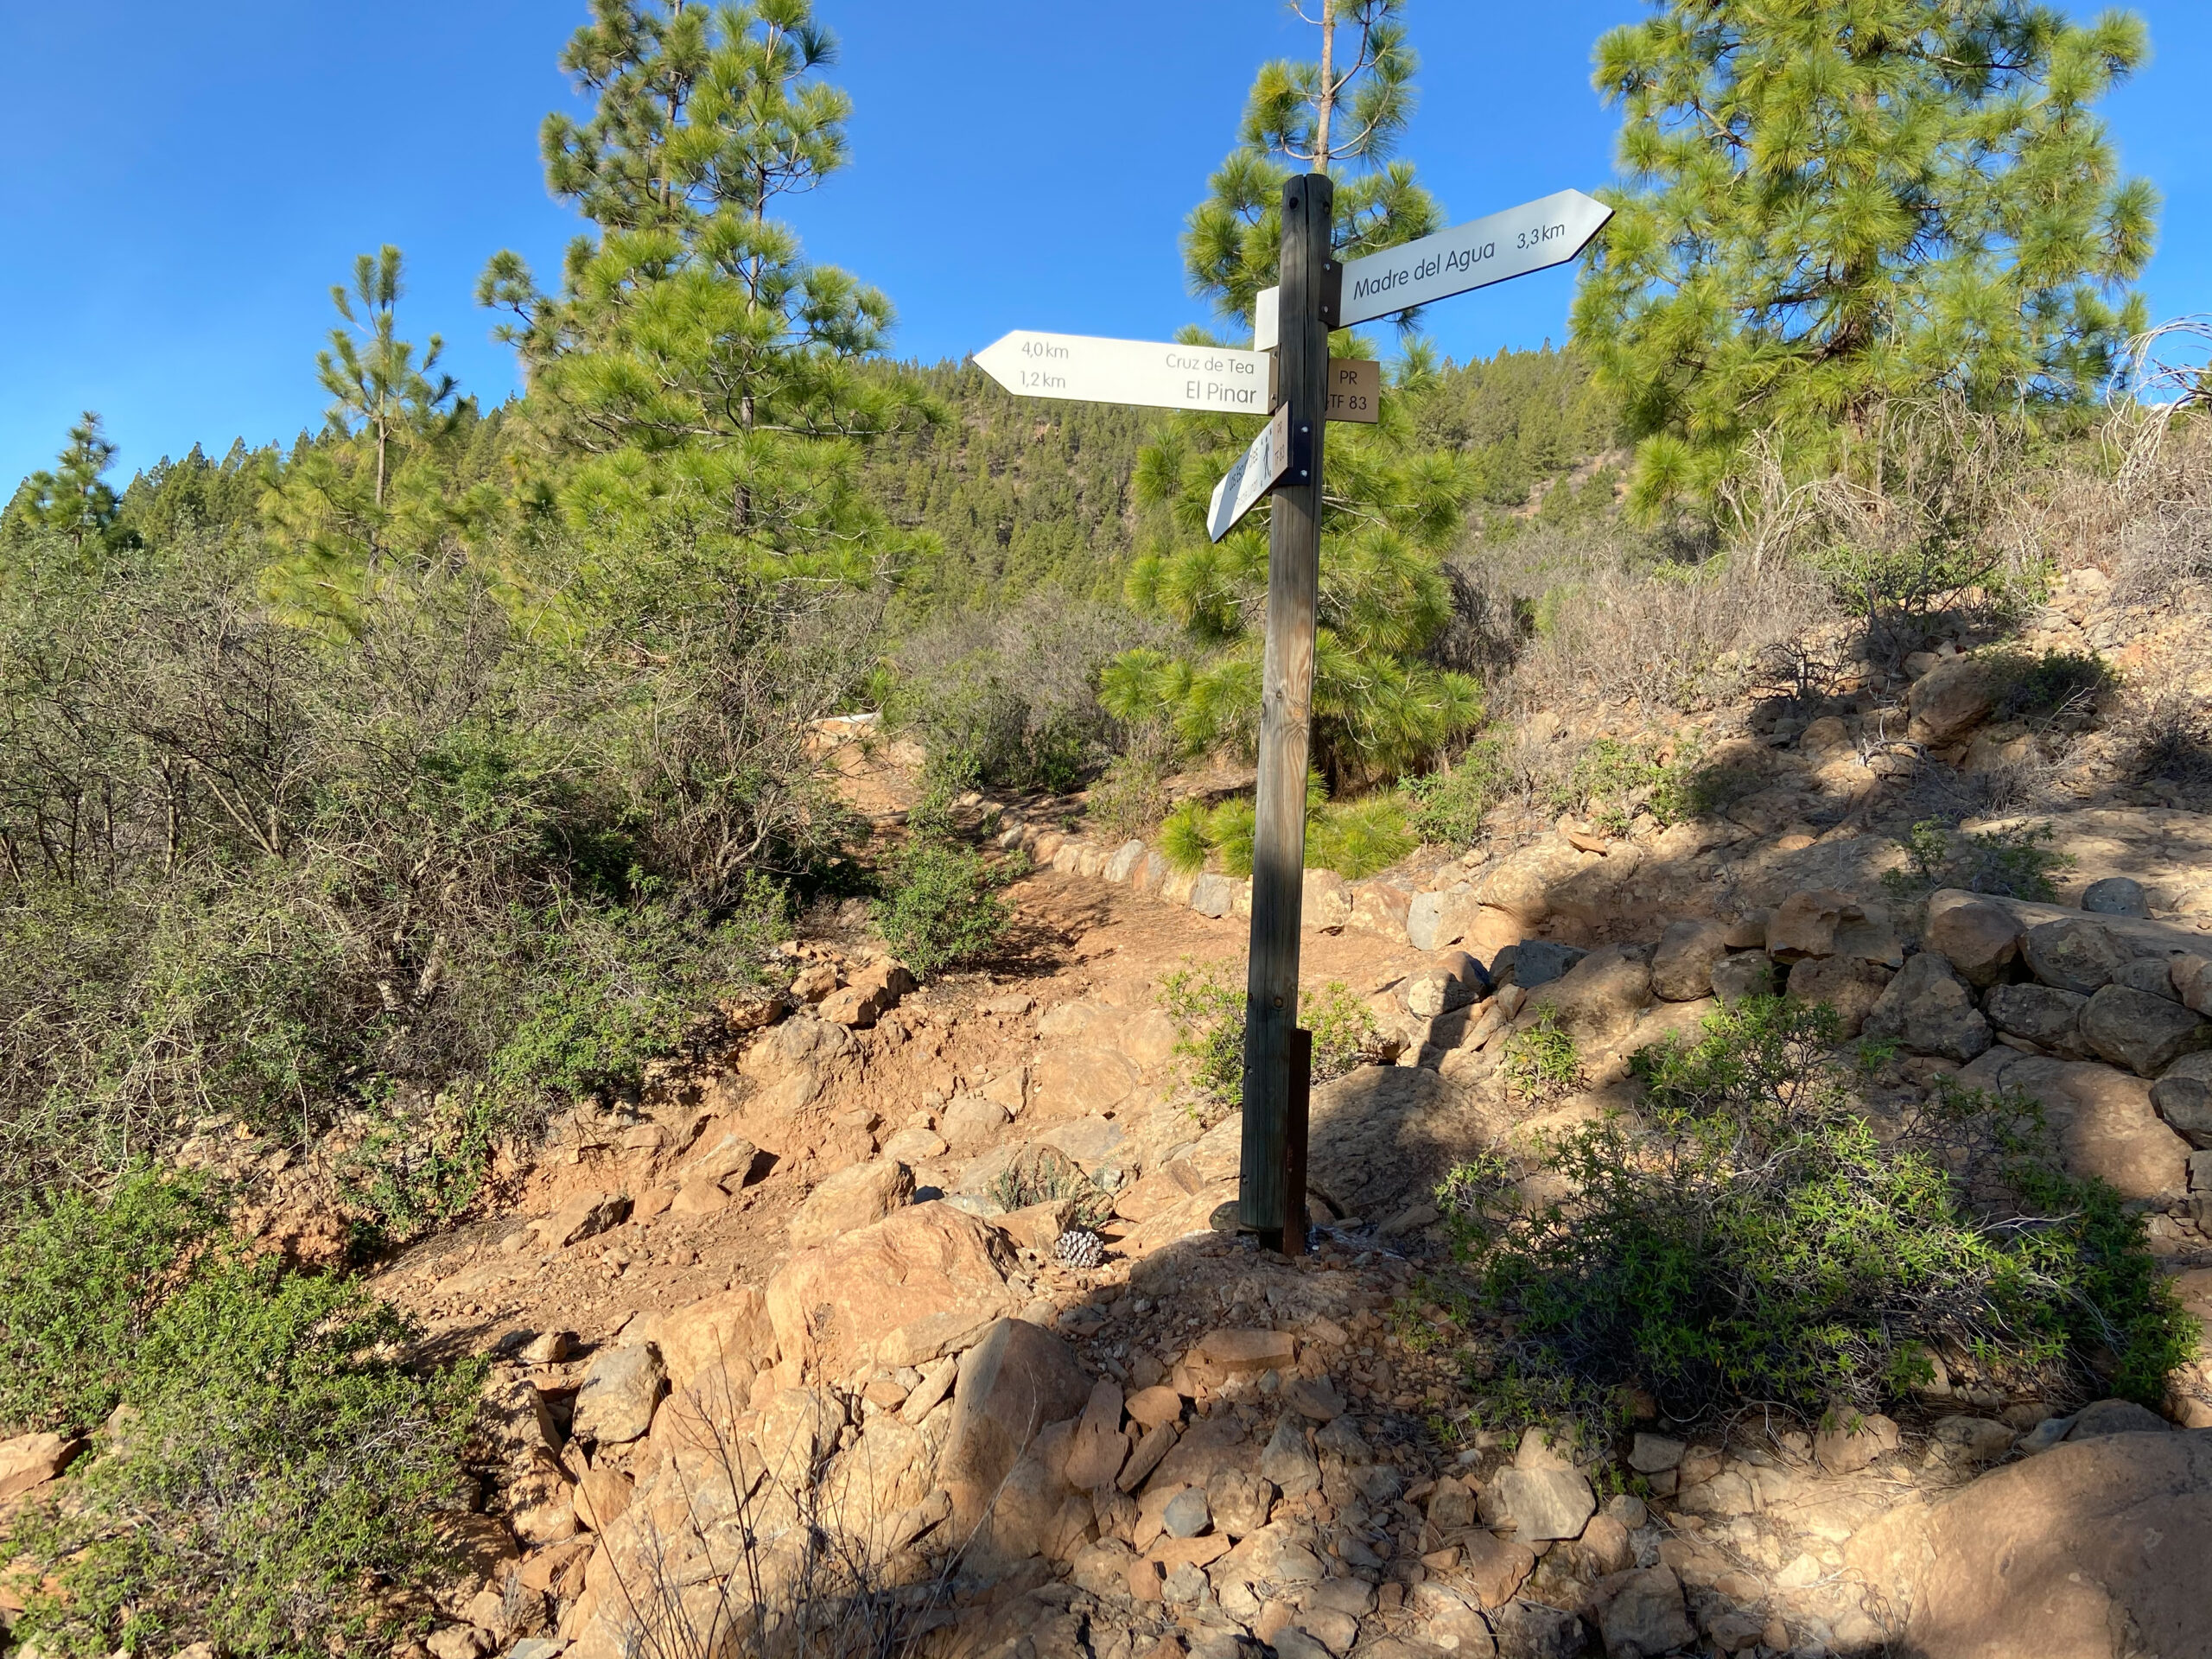 Hiking signs to the Madre del Agua - outward and return fork